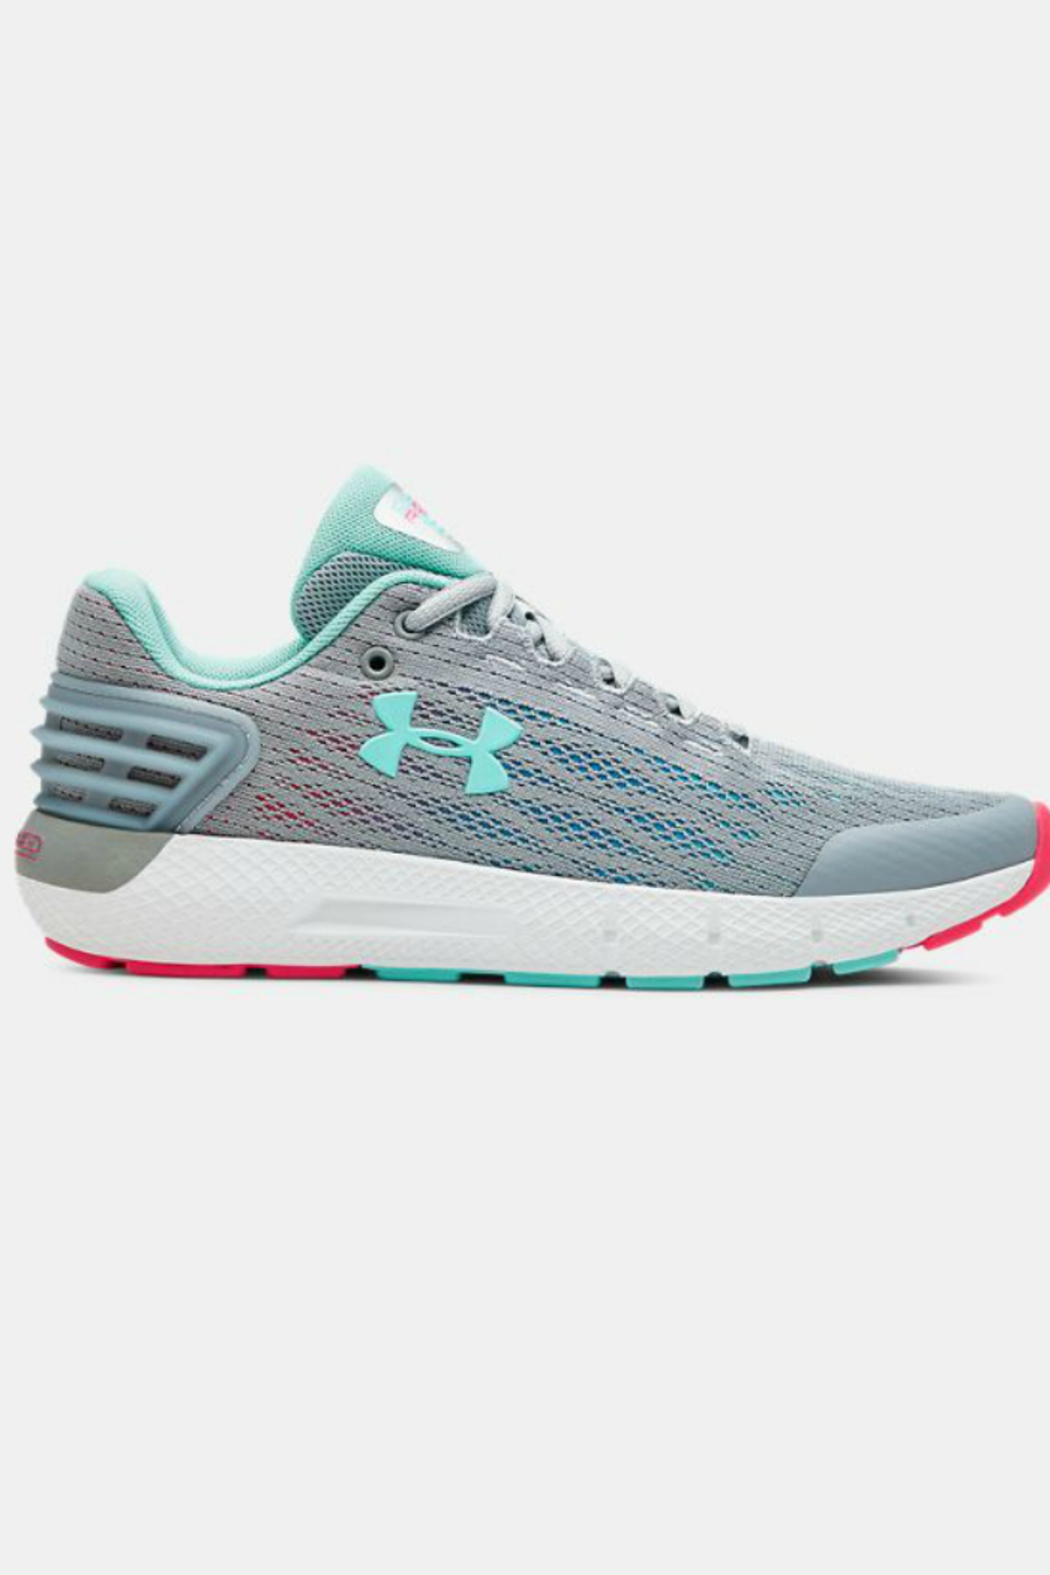 Under Armour GIRLS CHARGED ROGUE - Main Image